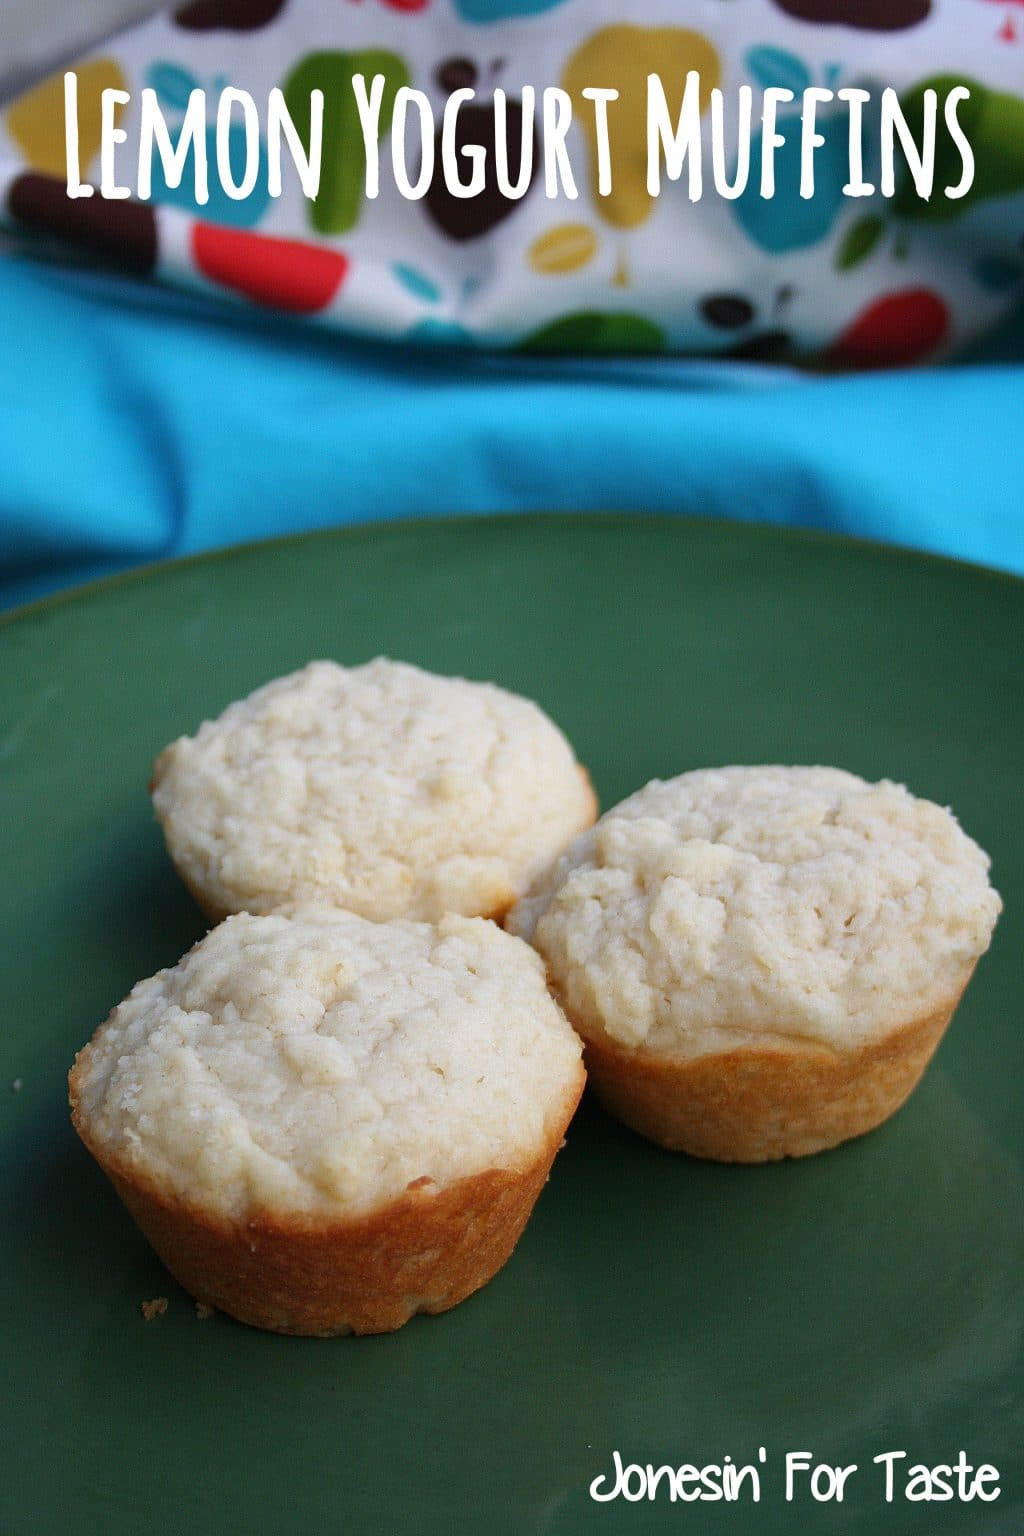 Lemony Yogurt Muffins